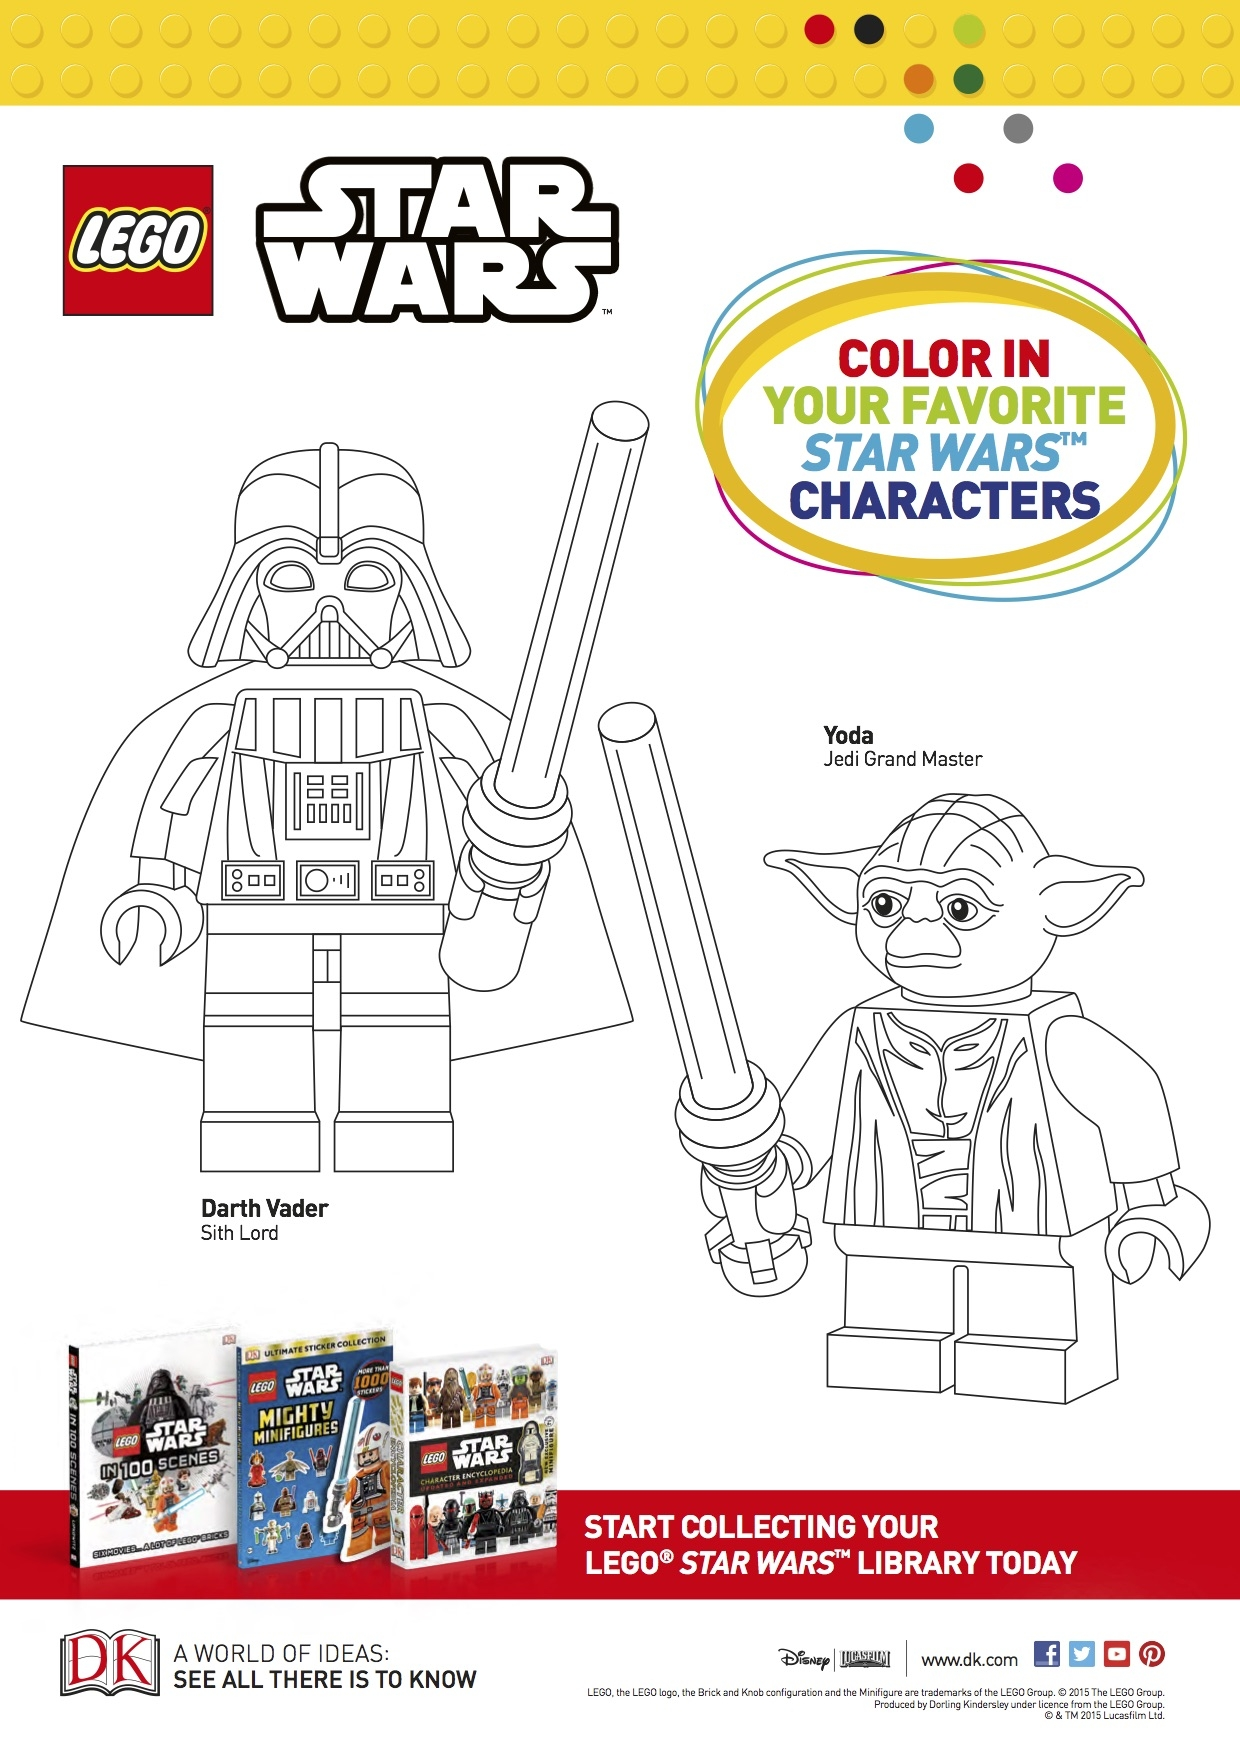 20 Darth Vader Coloring Pages Selection | FREE COLORING PAGES - Part 2